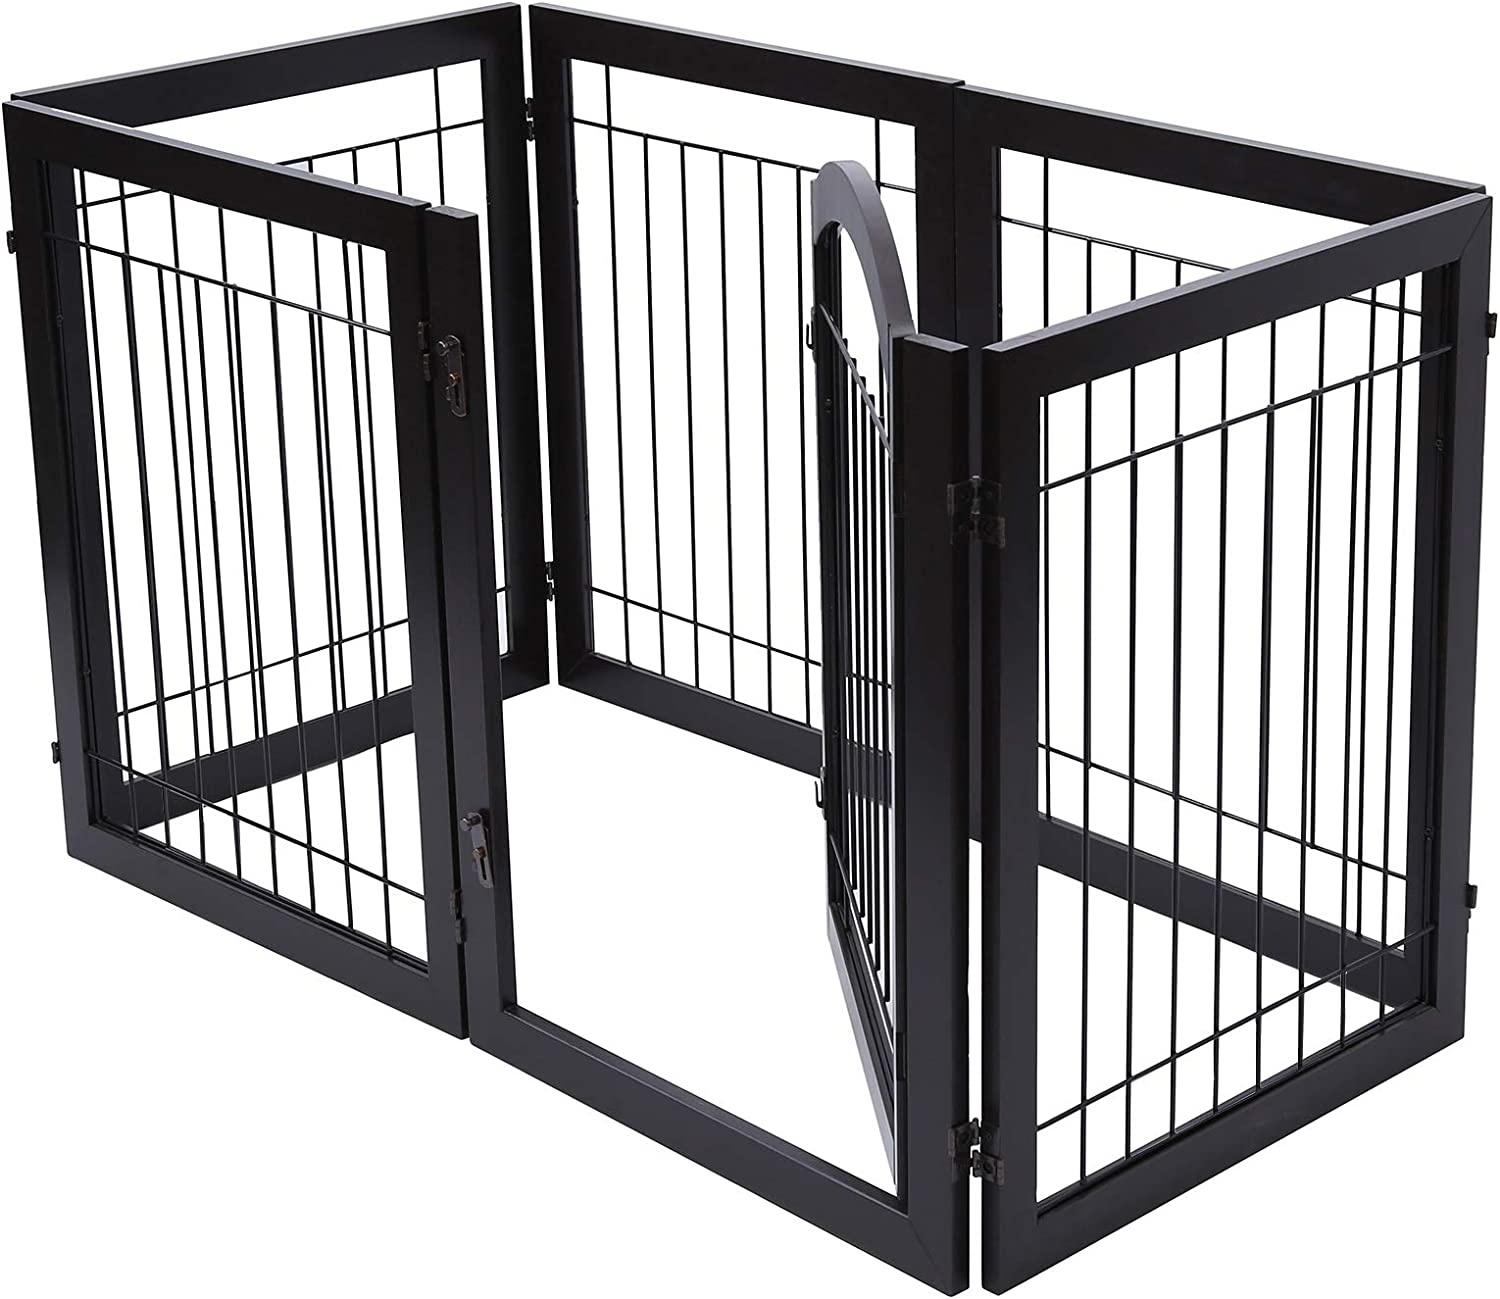 PAWLAND 144-inch Extra Wide 30-inches Tall Dog gate with Door Walk Through, Freestanding Wire Pet Gate for The House, Doorway, Stairs, Pet Puppy Safety Fence, Support Feet Included, Espresso,6 Panels: Baby